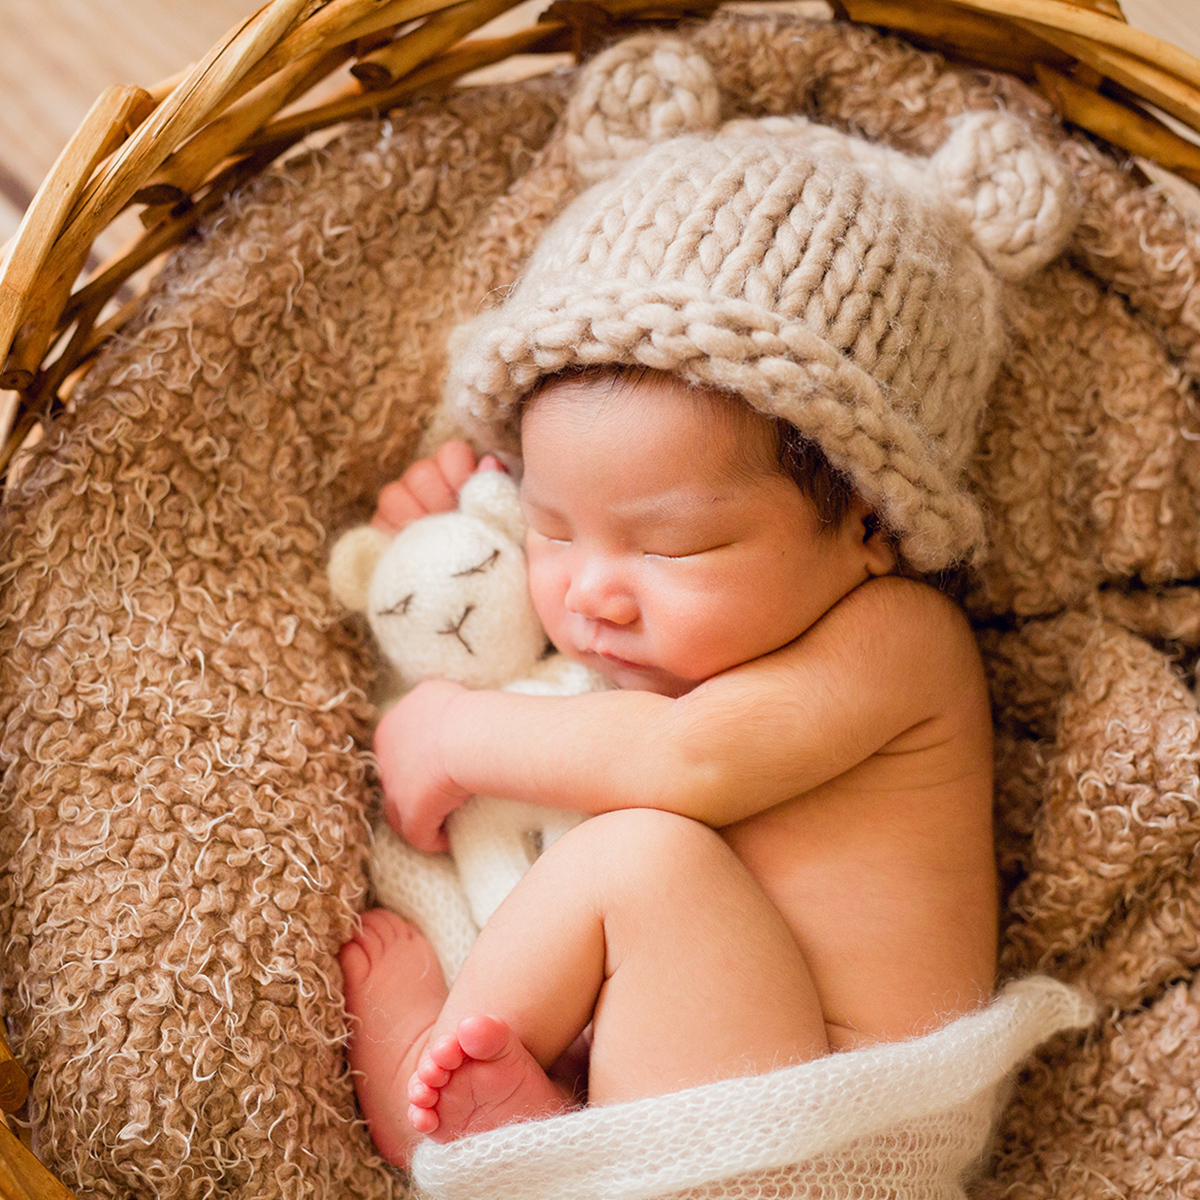 newborn-photographer-london-ann-wo-baby-bear-hat-cuddle-toy-2019.jpg